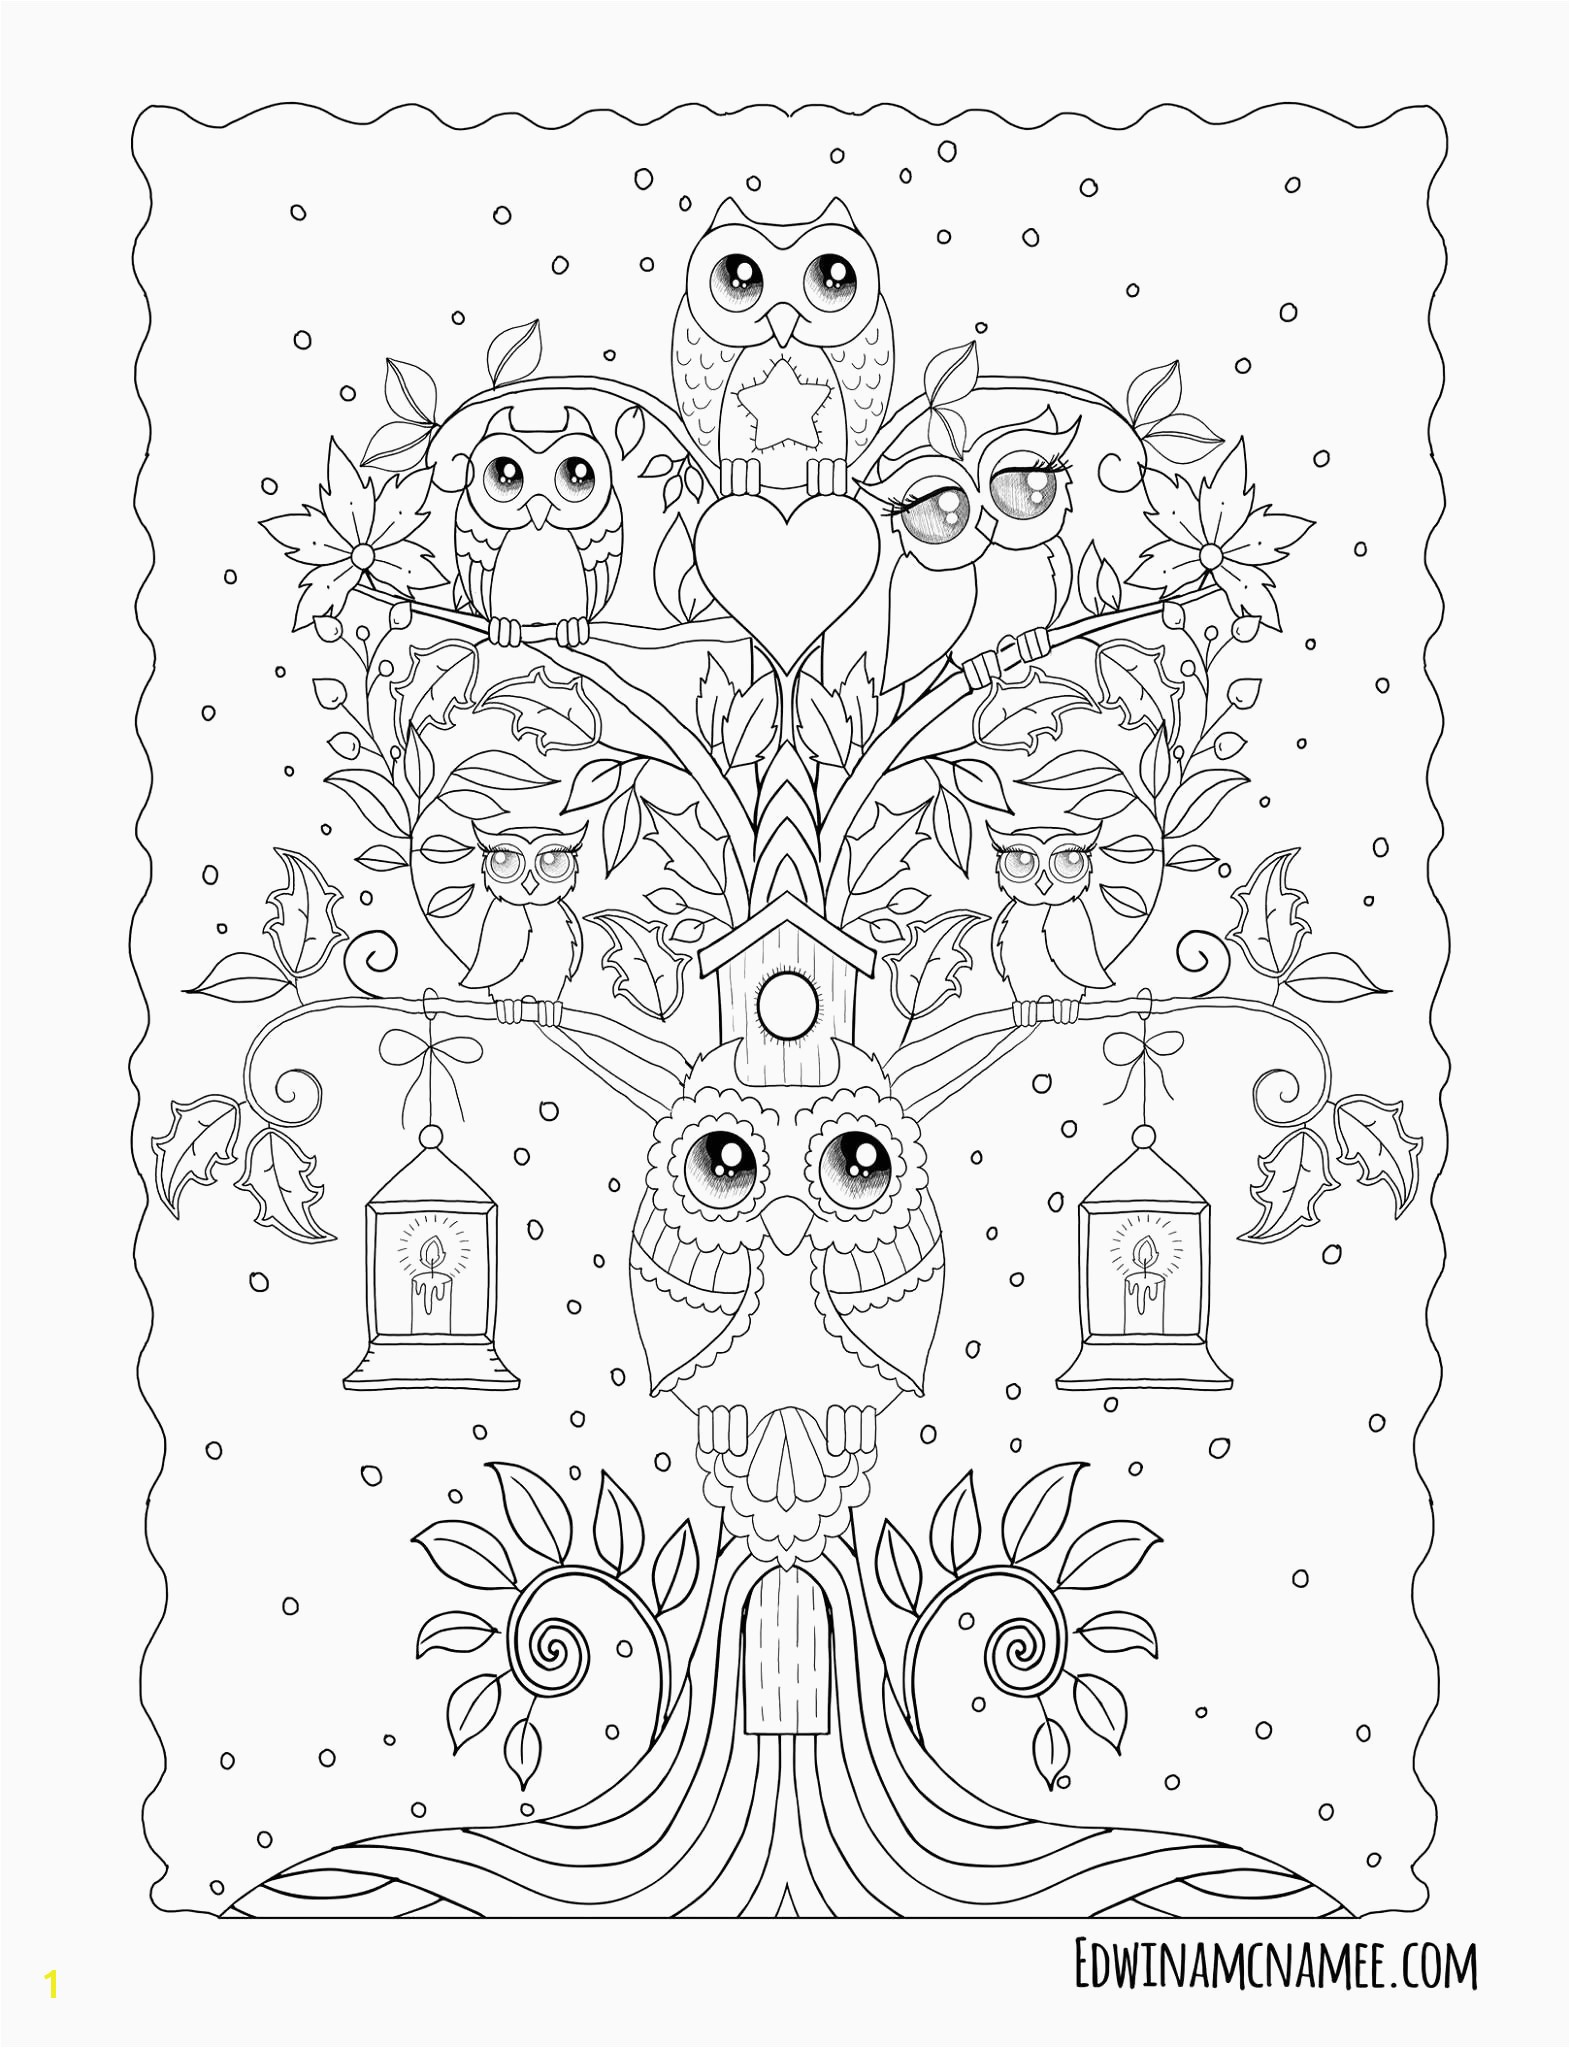 Free Printable Mushroom Coloring Pages Beautiful Abstract Mushrooms Coloring Pages Katesgrove